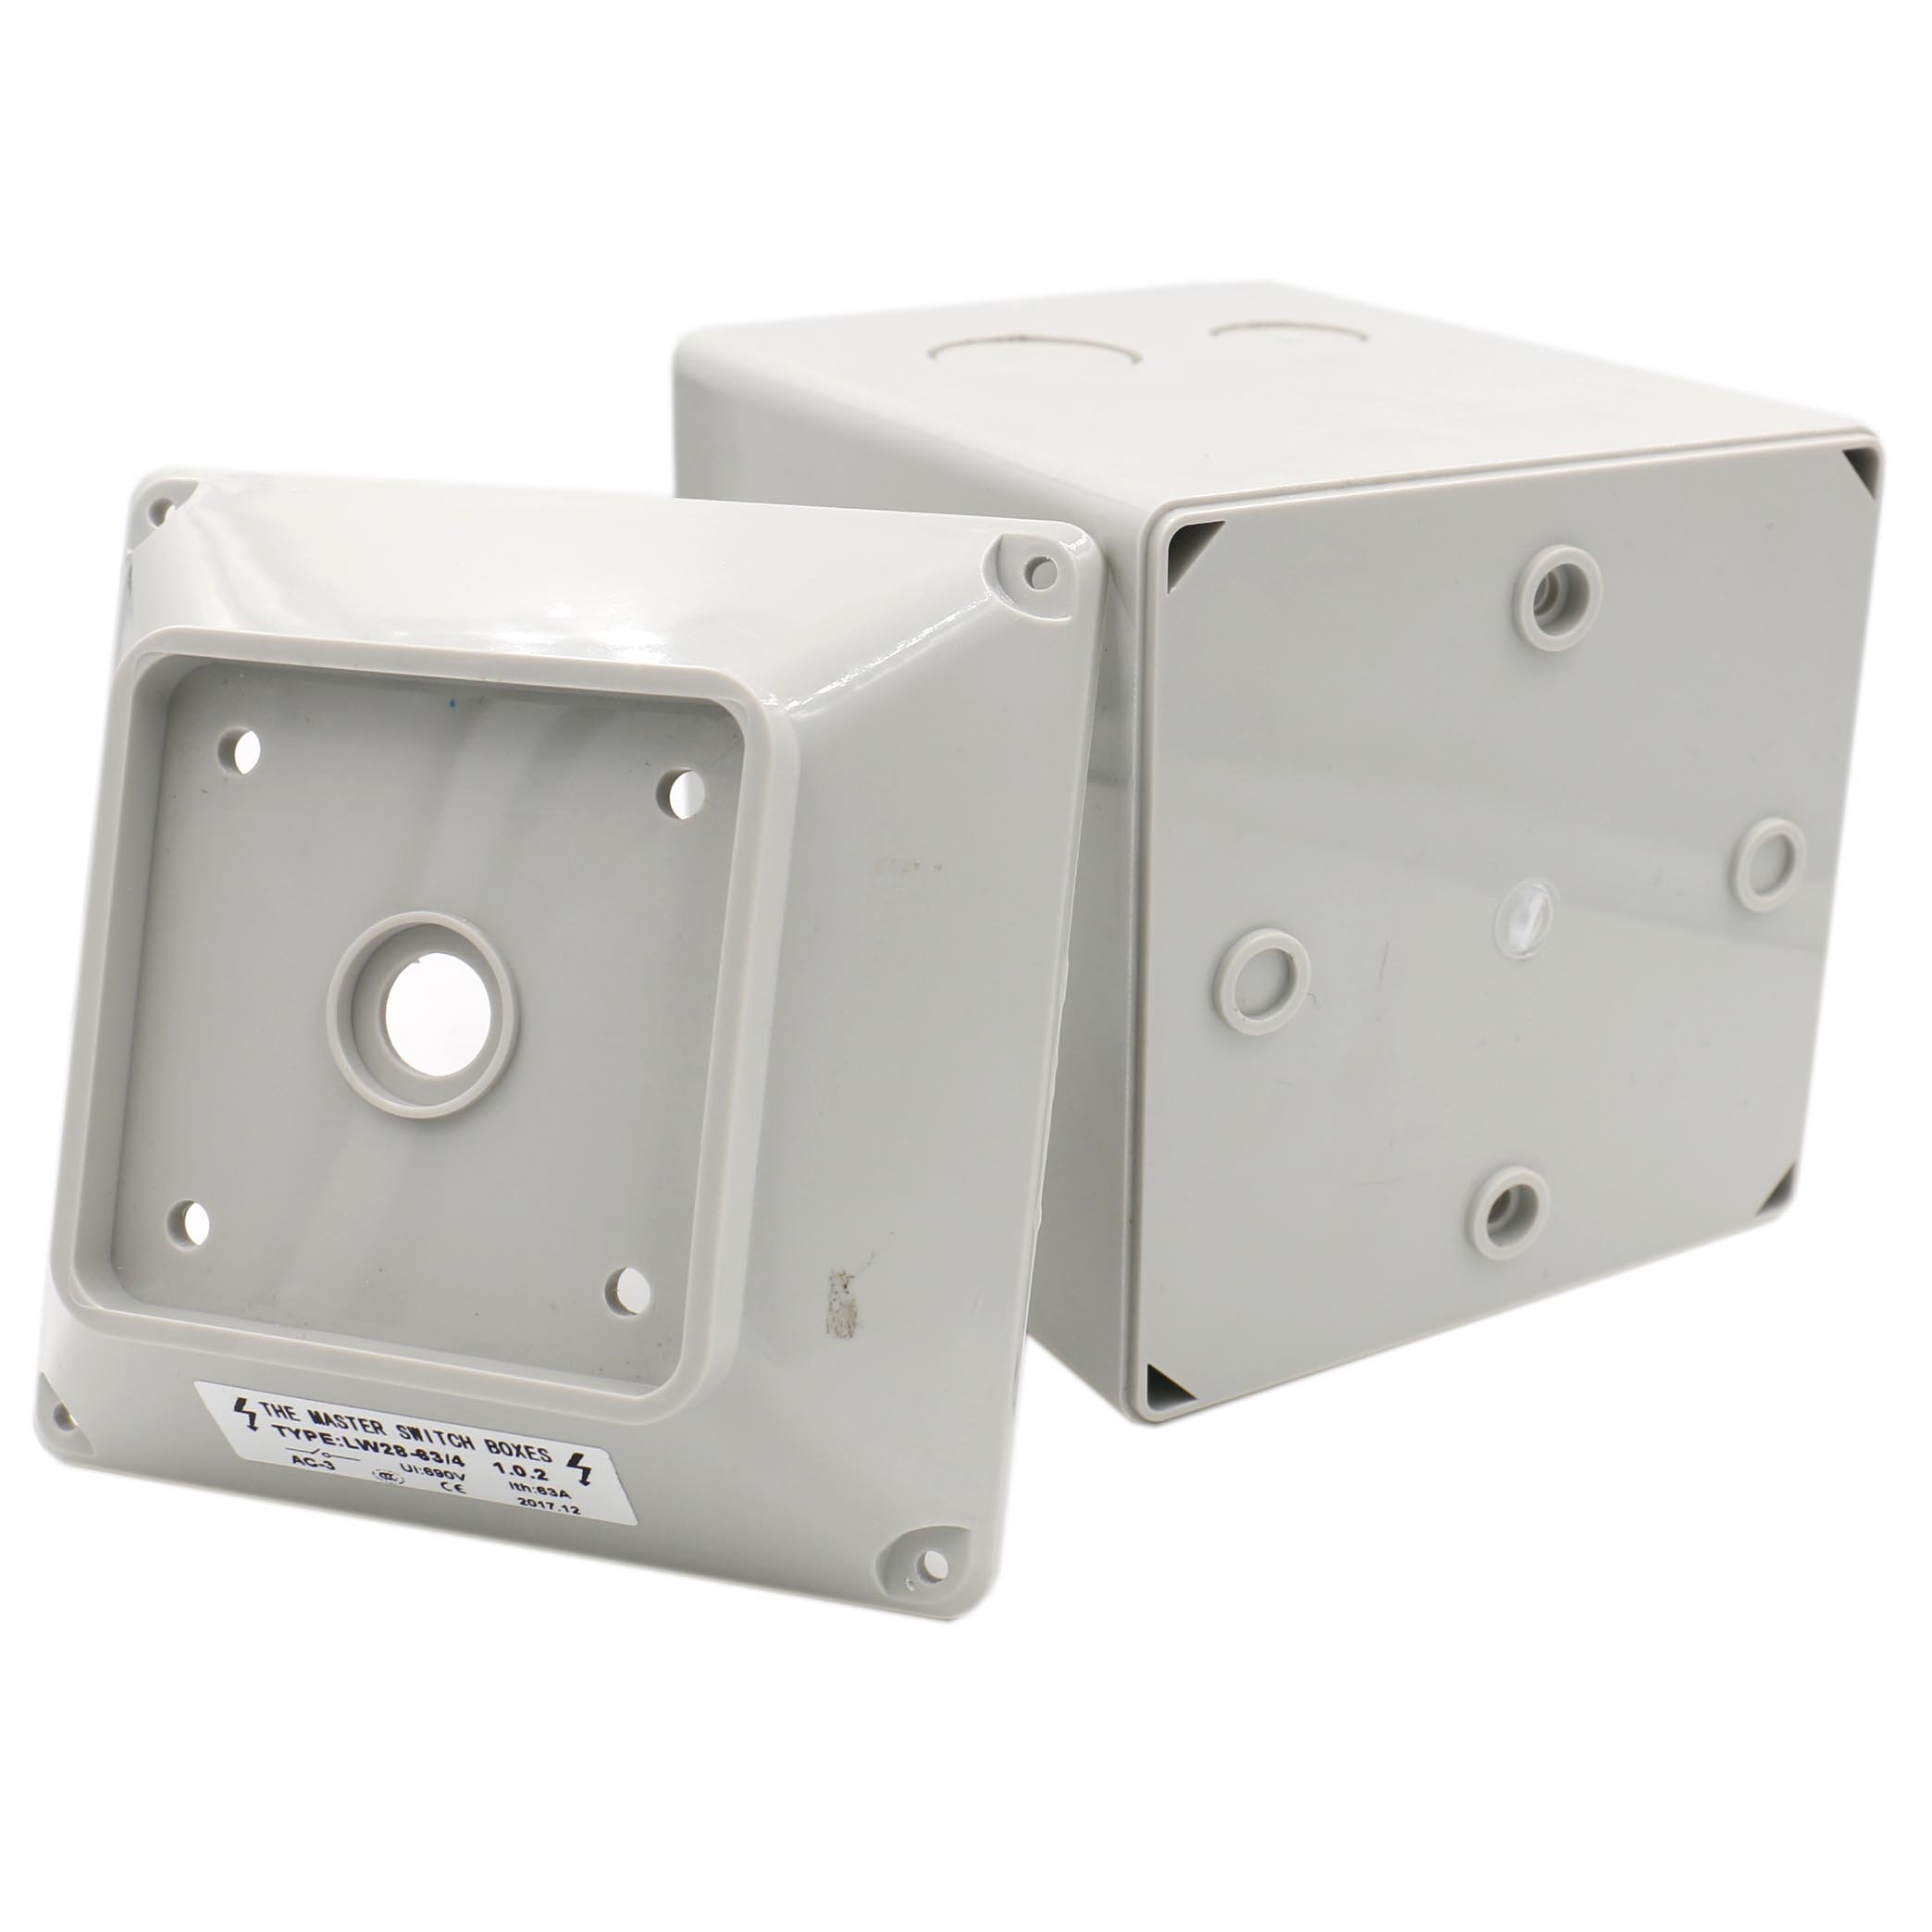 Baomain Master Switch Exterior Box LW28-63/4 Work for Universal Rotary Changeover Cam Switch SZW26-63 660V 63A 3 Position 3 Phase by Baomain (Image #3)